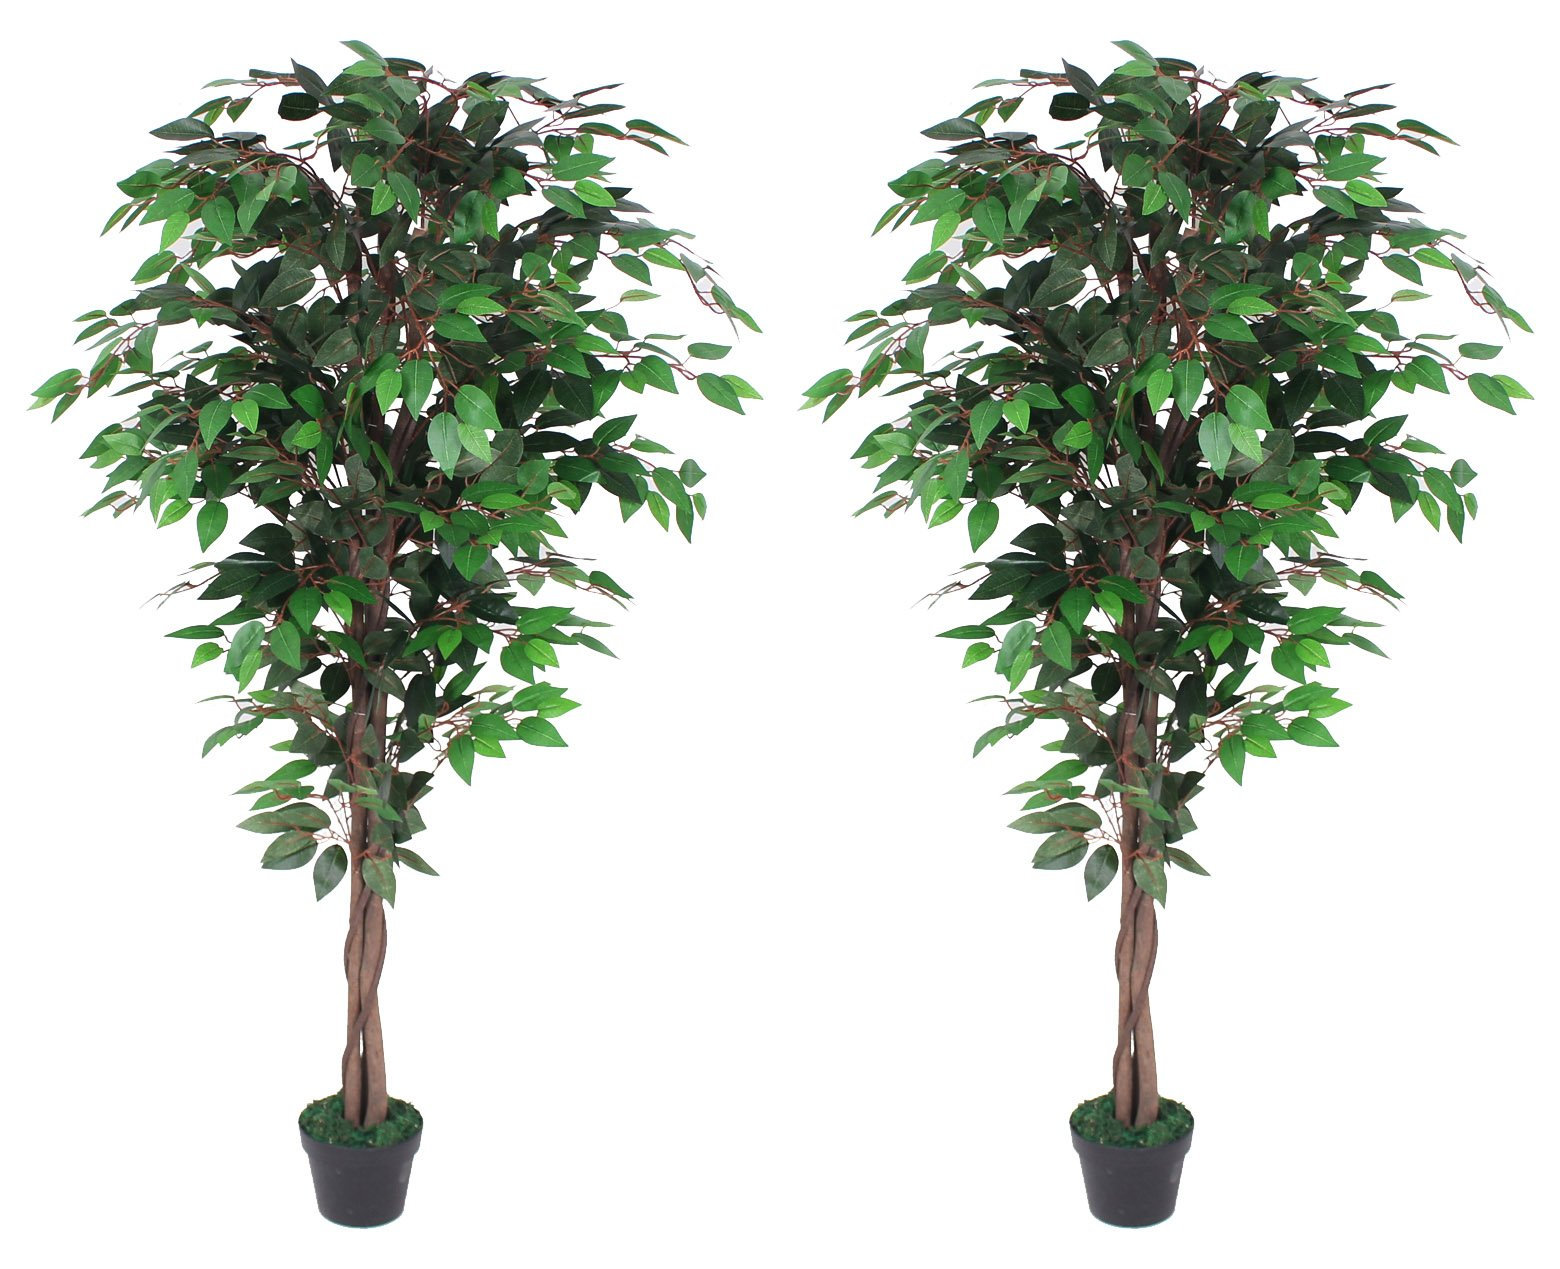 Pair Of AMERIQUE Gorgeous 6 Feet Ficus Trees Artificial Silk Plant, with Nursery Plastic Pots, Feel Real Technology, Super Quality, Green